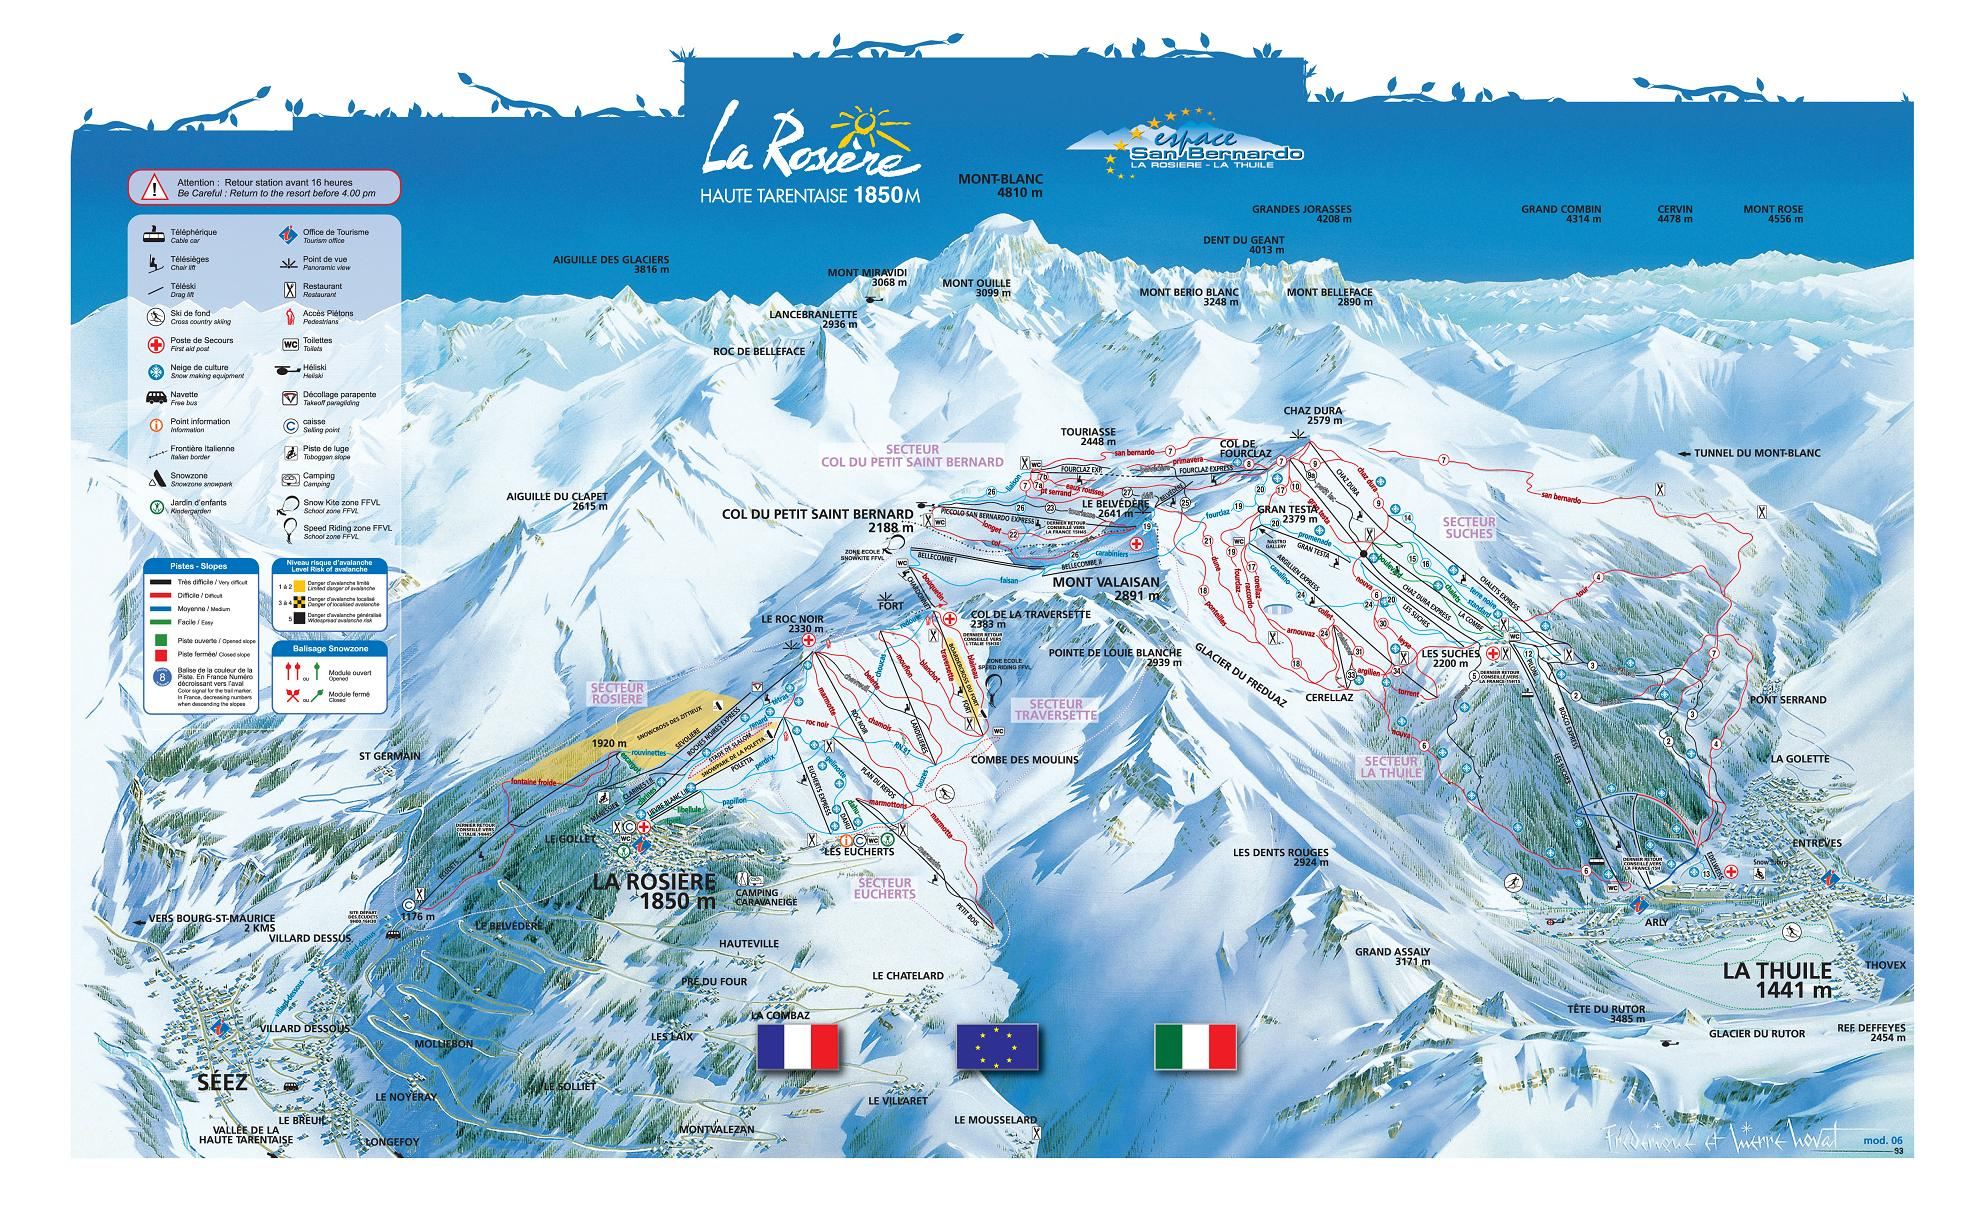 La Rosiere piste map